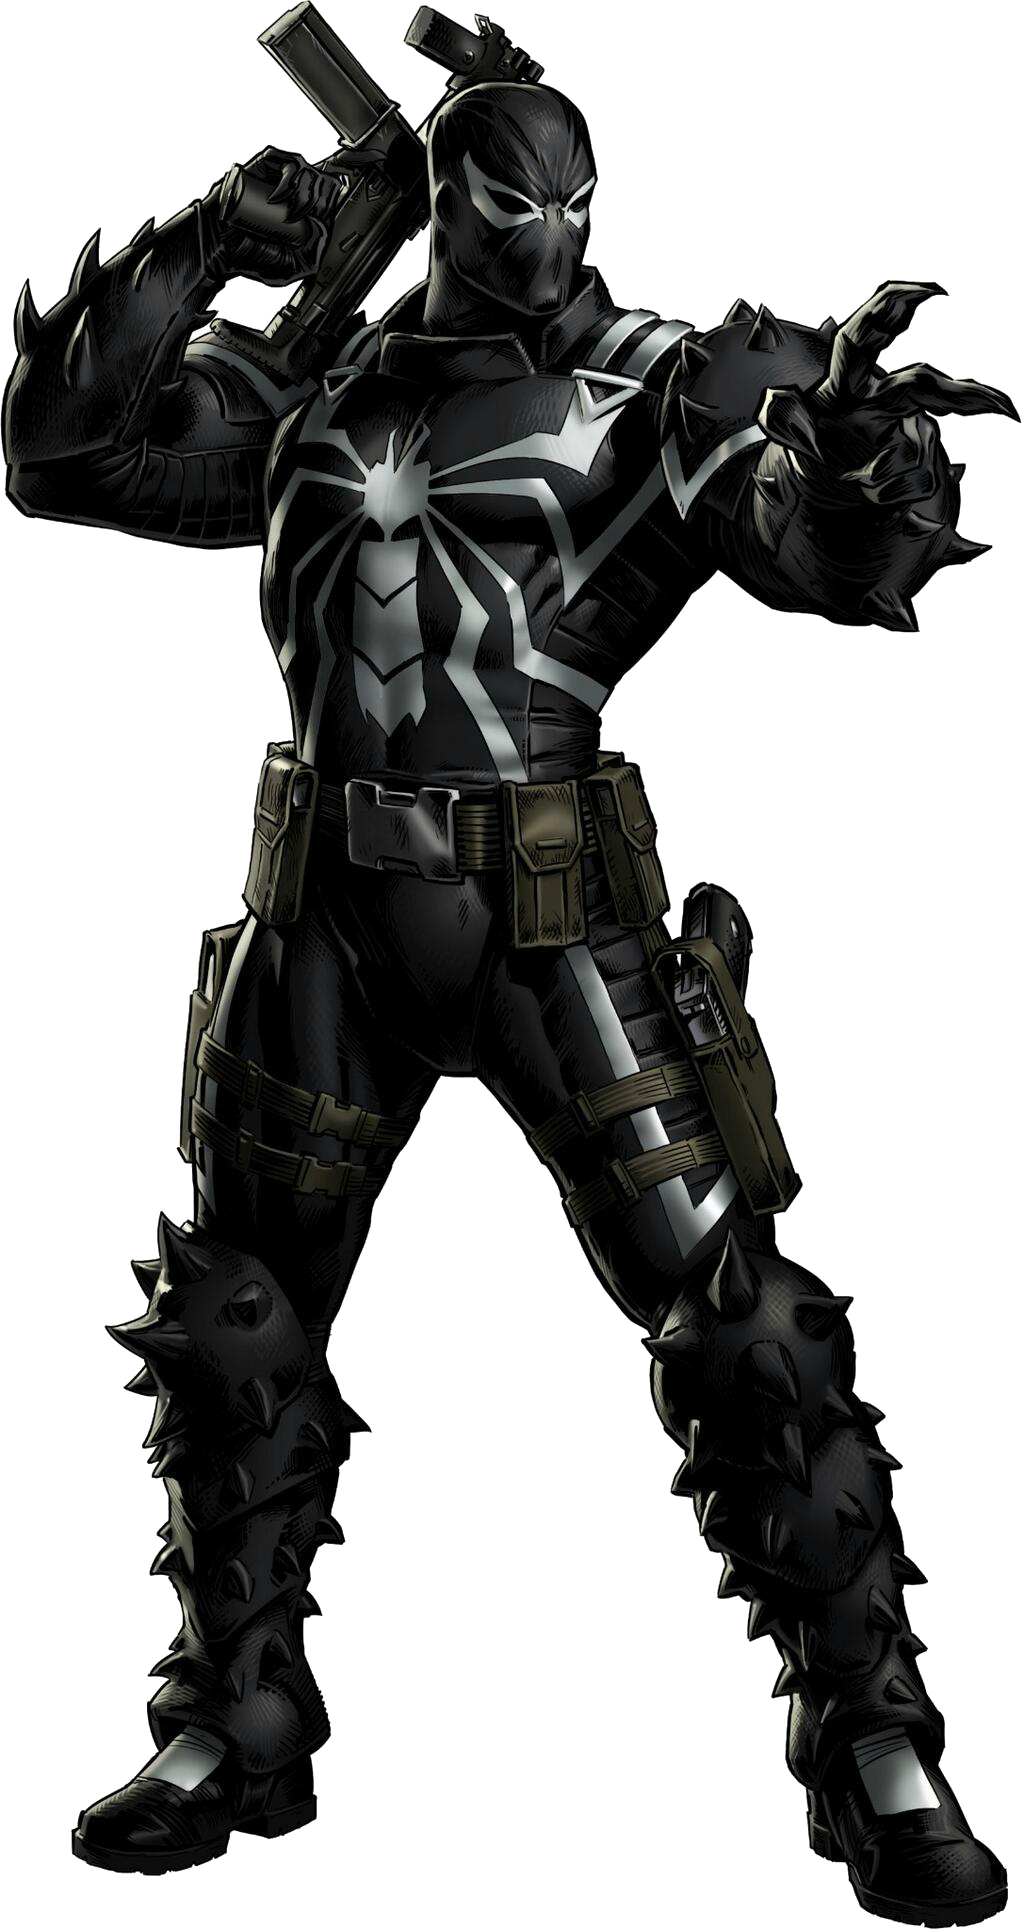 image agent venom portrait marvel avengers alliance wiki fandom powered by wikia. Black Bedroom Furniture Sets. Home Design Ideas